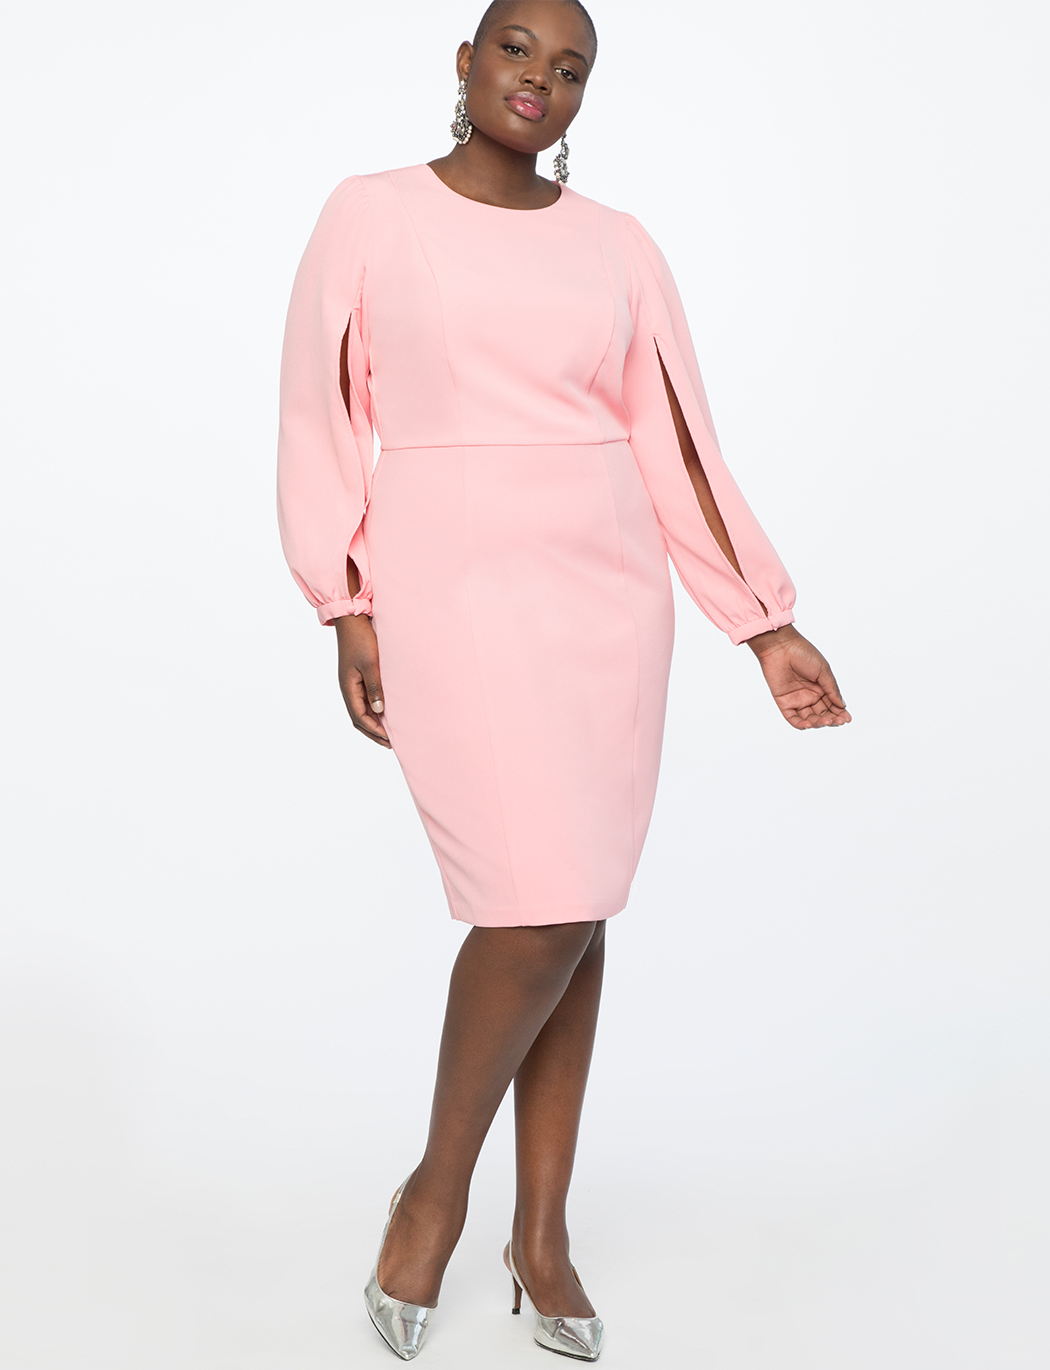 Slit Sleeve Work Dress | Women\'s Plus Size Dresses | ELOQUII